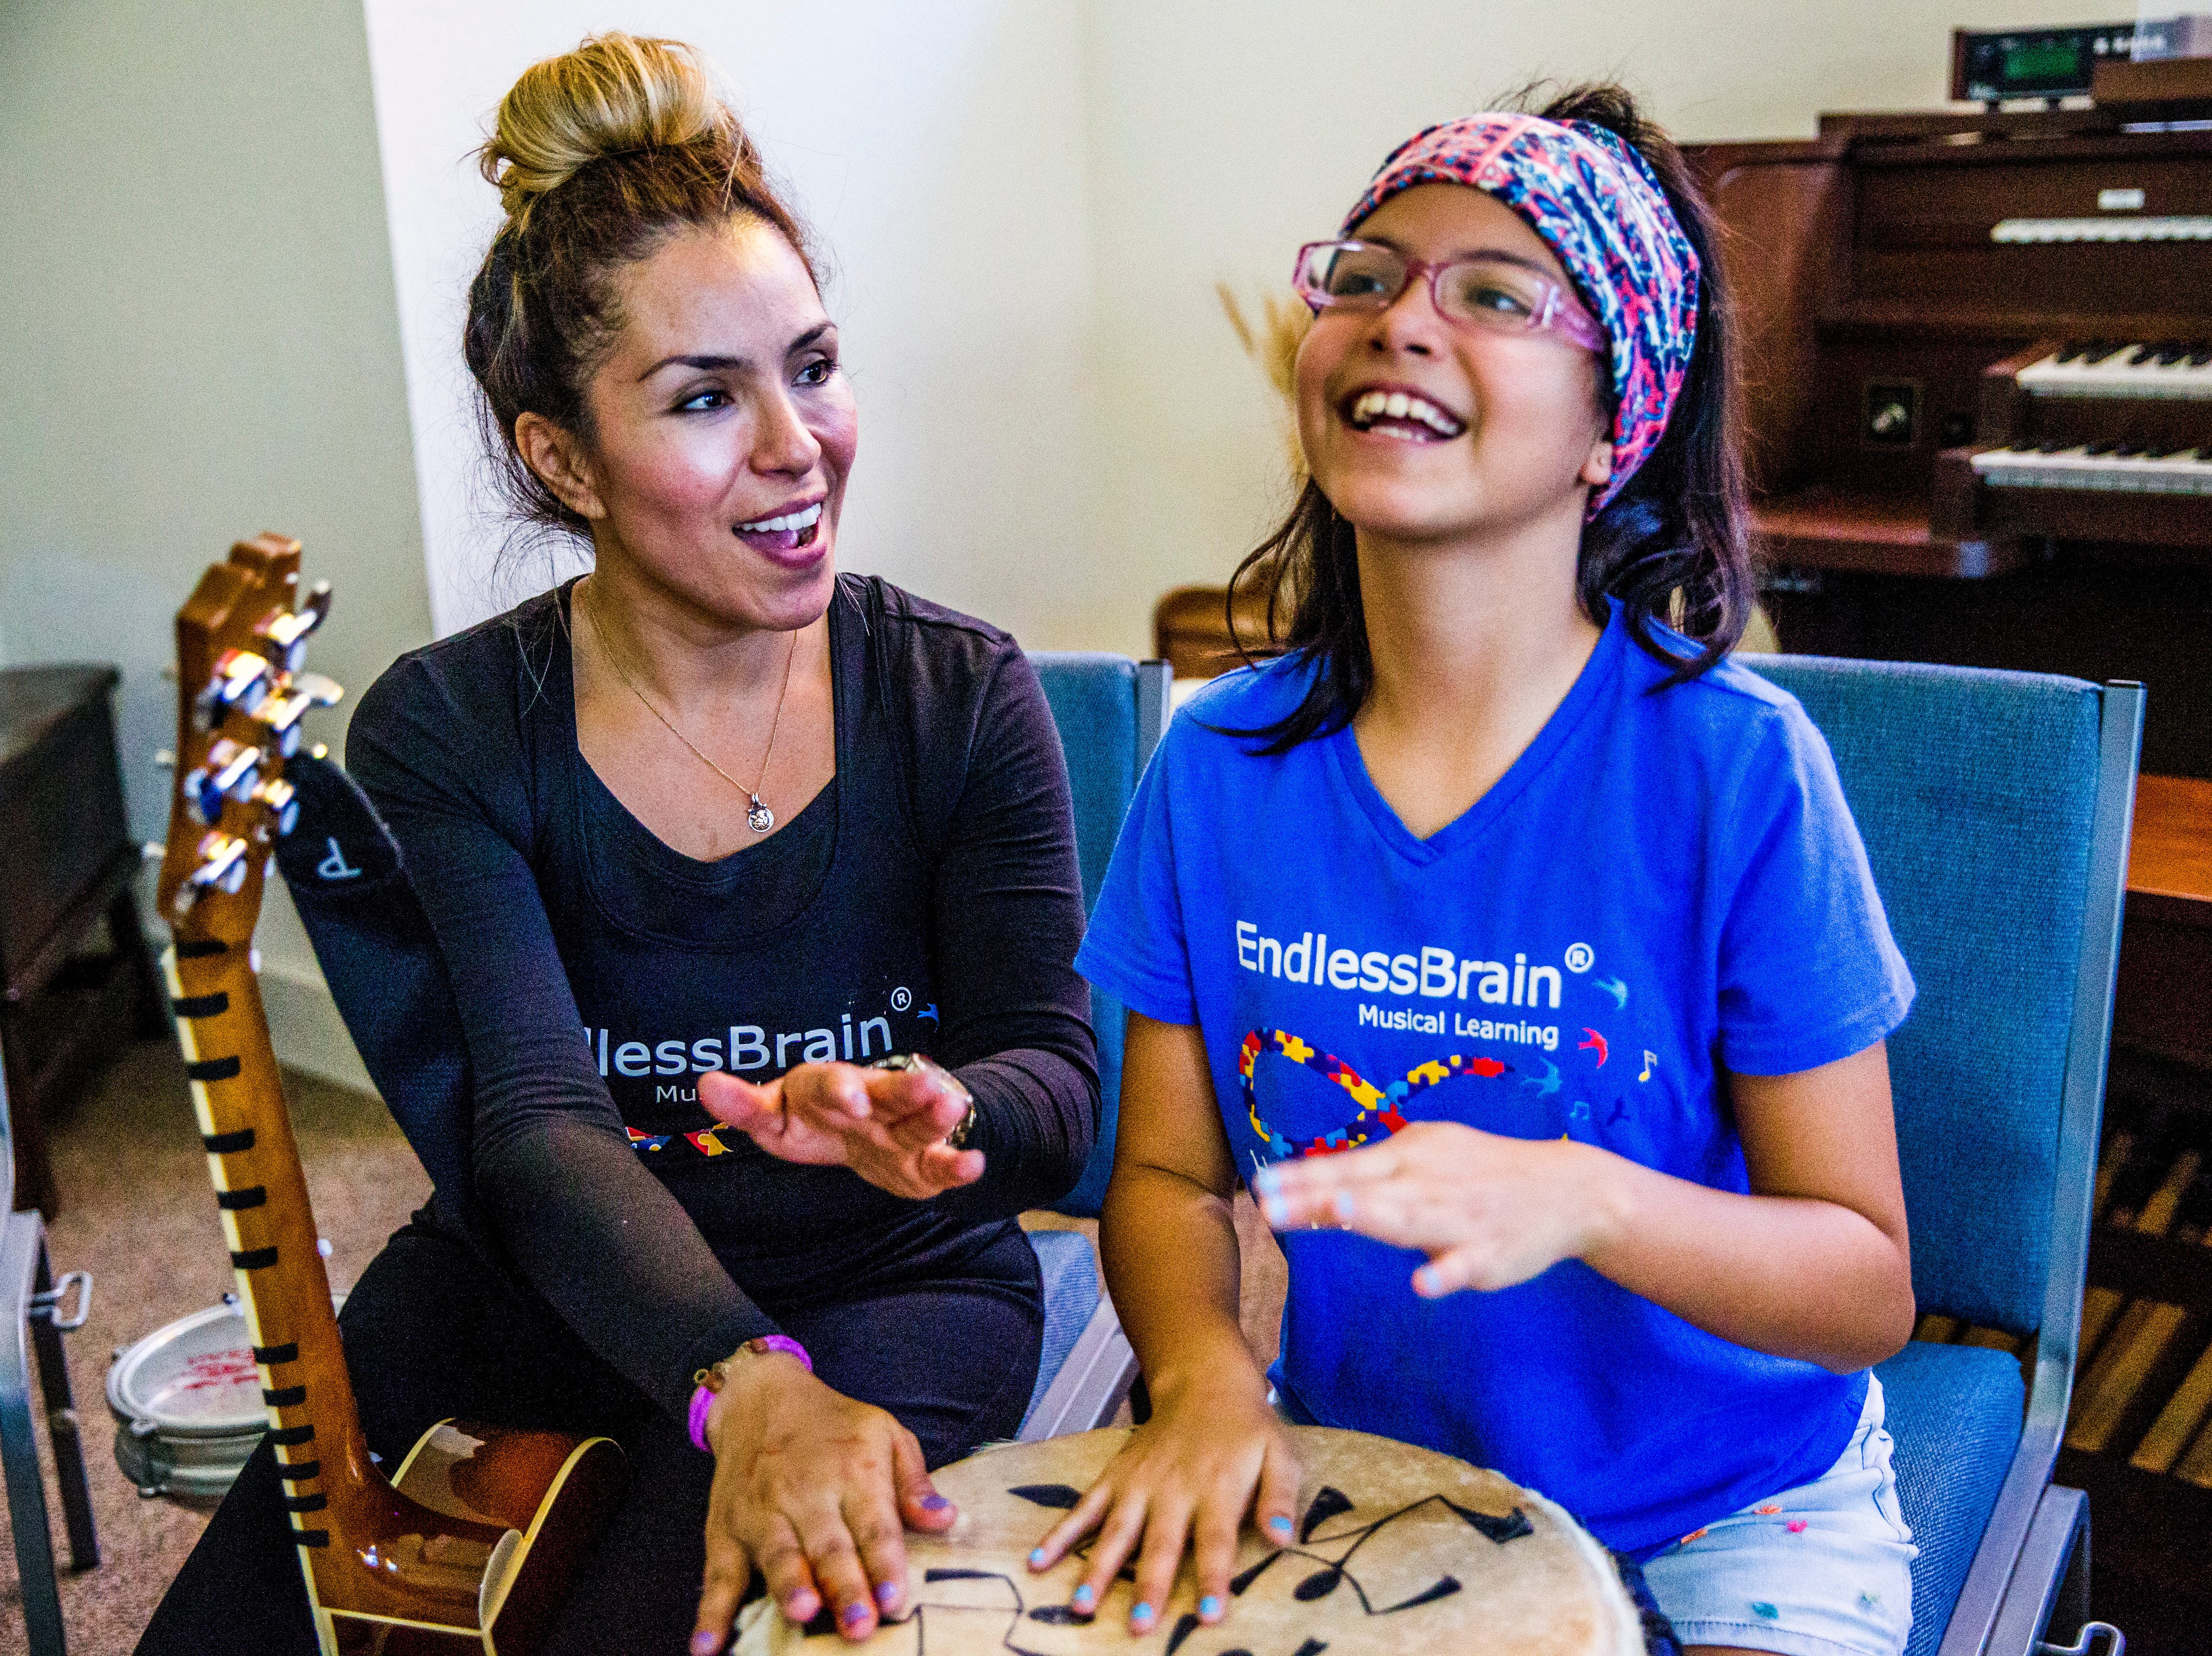 Marcela Guimoye and her daughter Camila Chang, 11, drum together during a drum circle at the EndlessBrain summer camp at Emmanuel Lutheran Church in Naples on Thursday, Aug. 9, 2018.